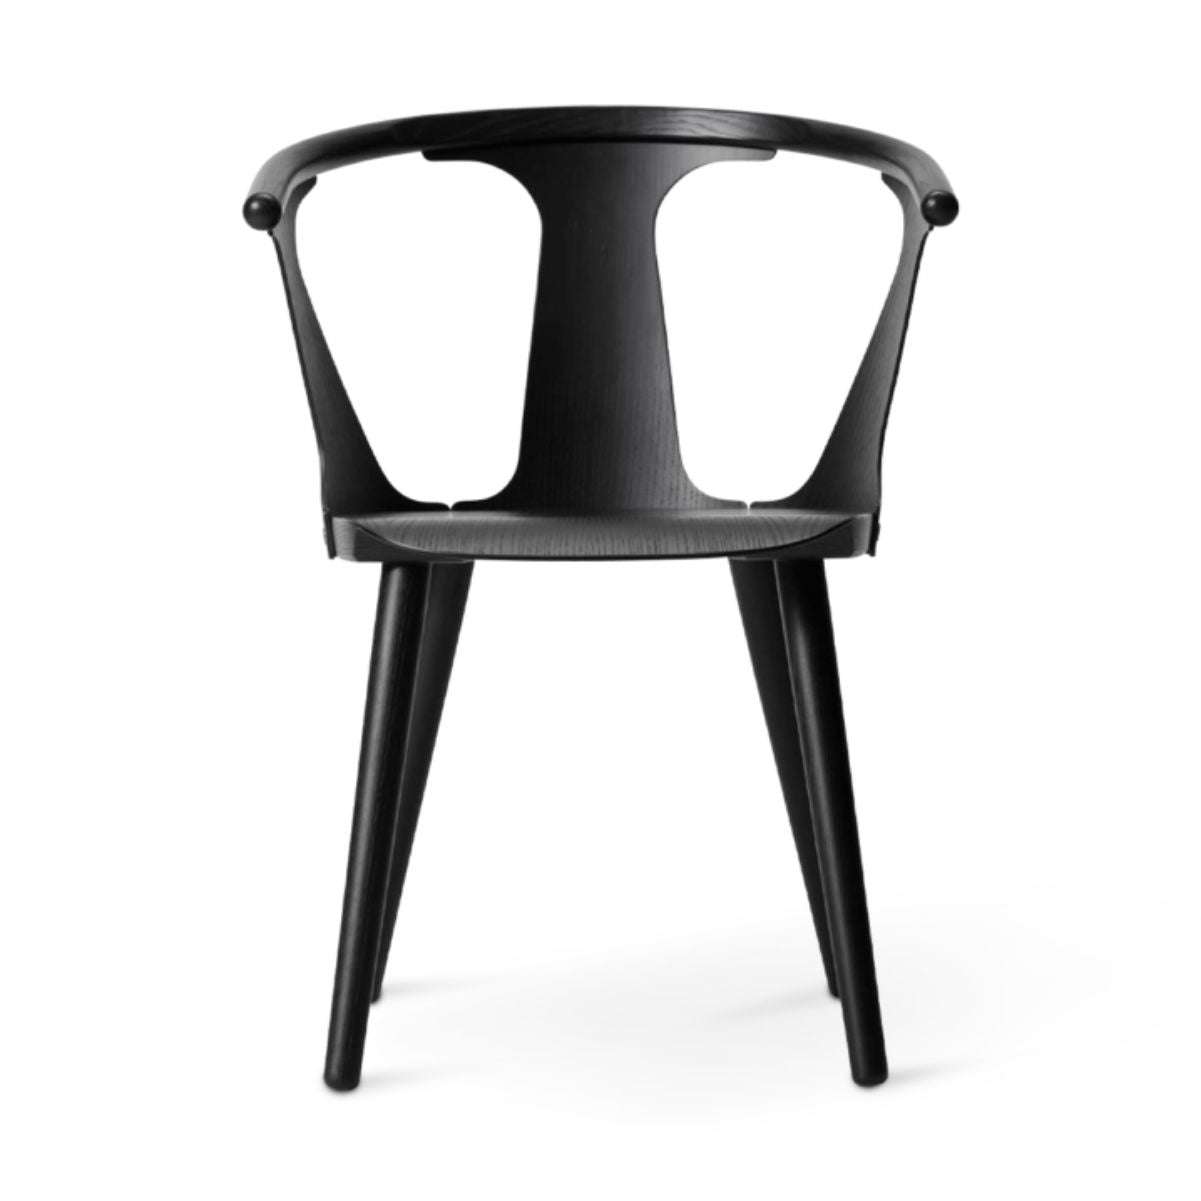 &Tradition In Between SK1 chair, black stained oak